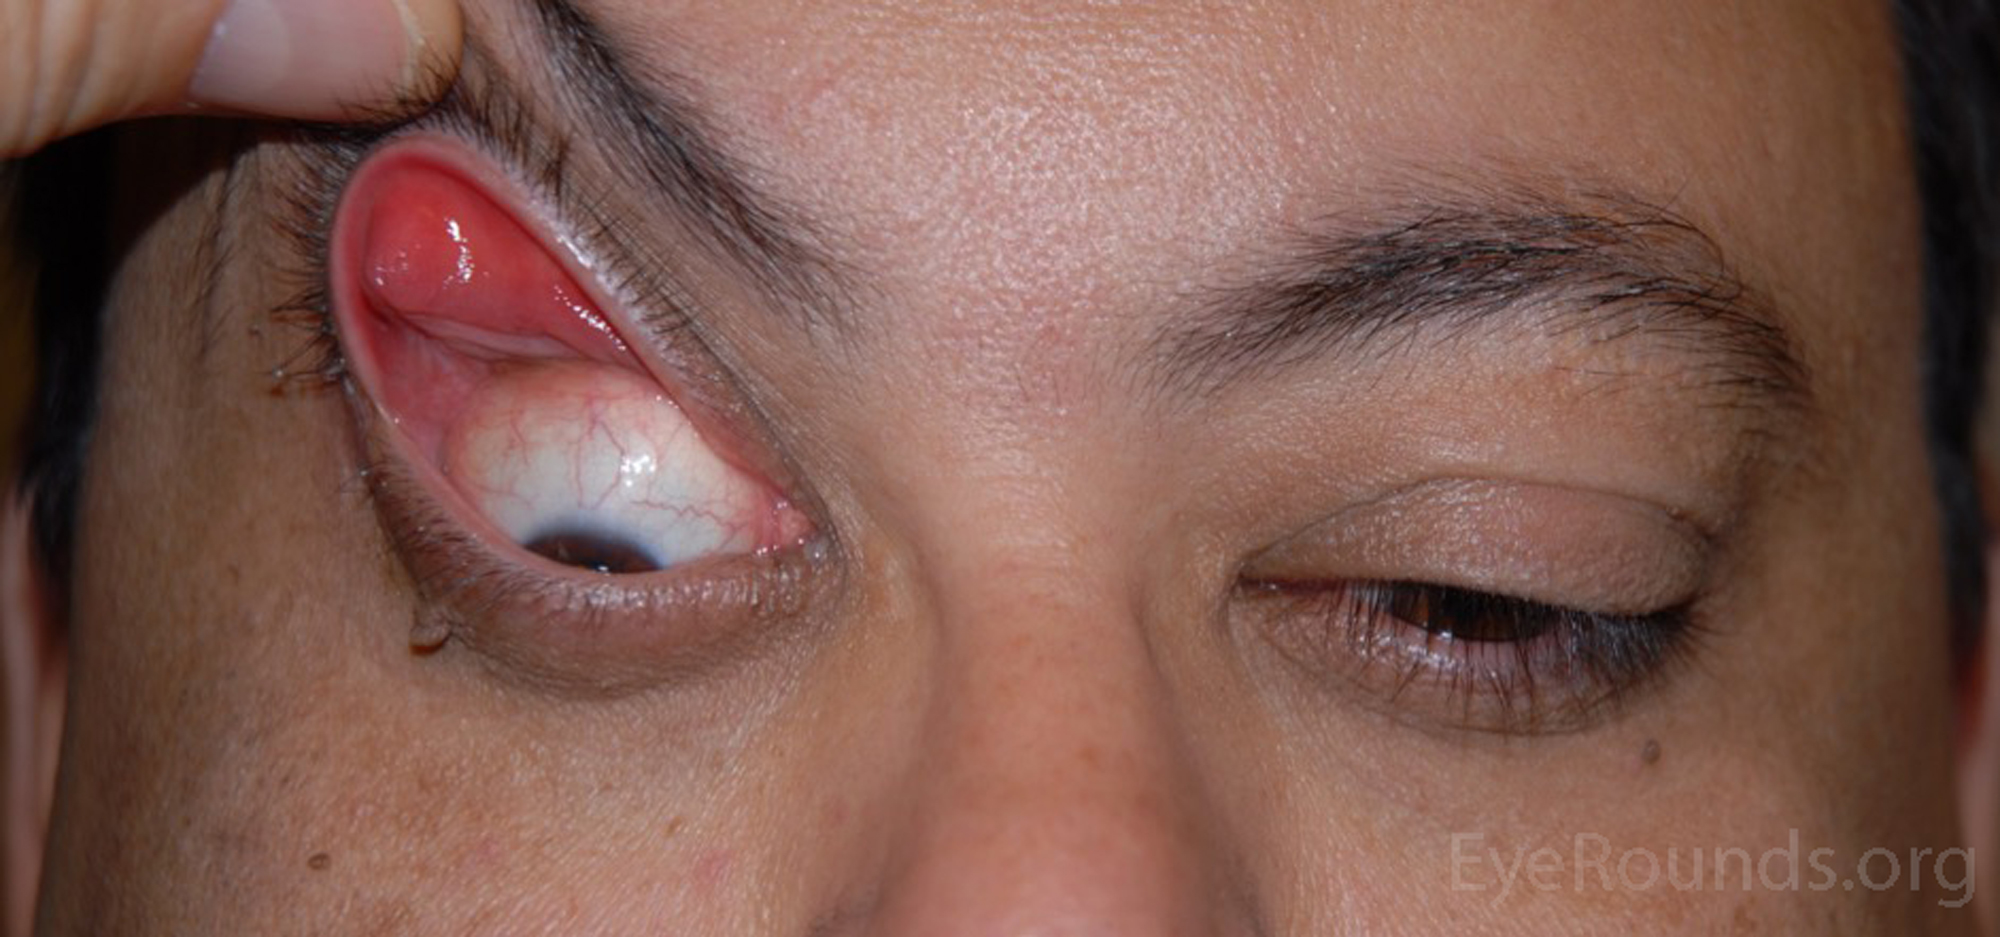 Floppy Eyelid Syndrome